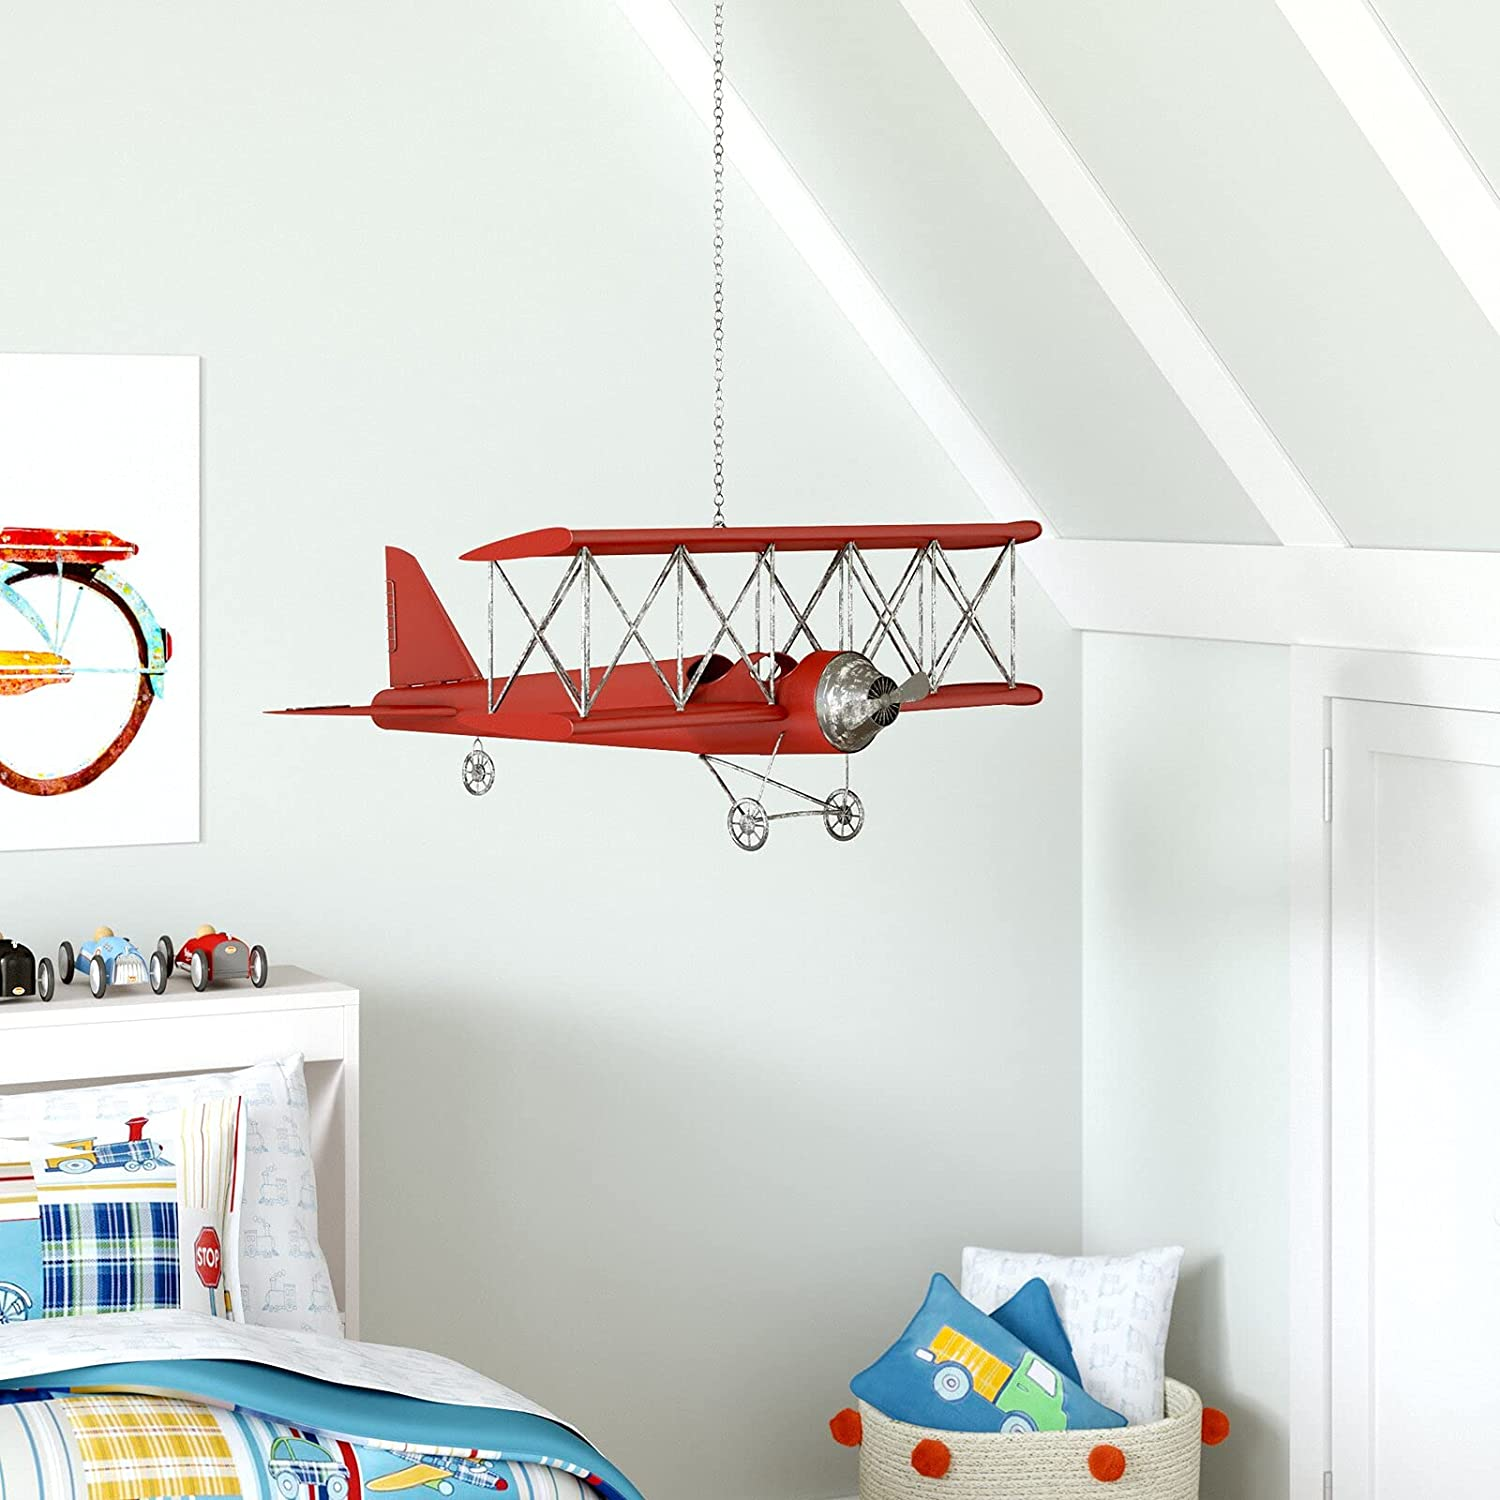 Lyndsey Our shop OFFers the best security service Hanging Model Plane Product or Car Type: Vehicle